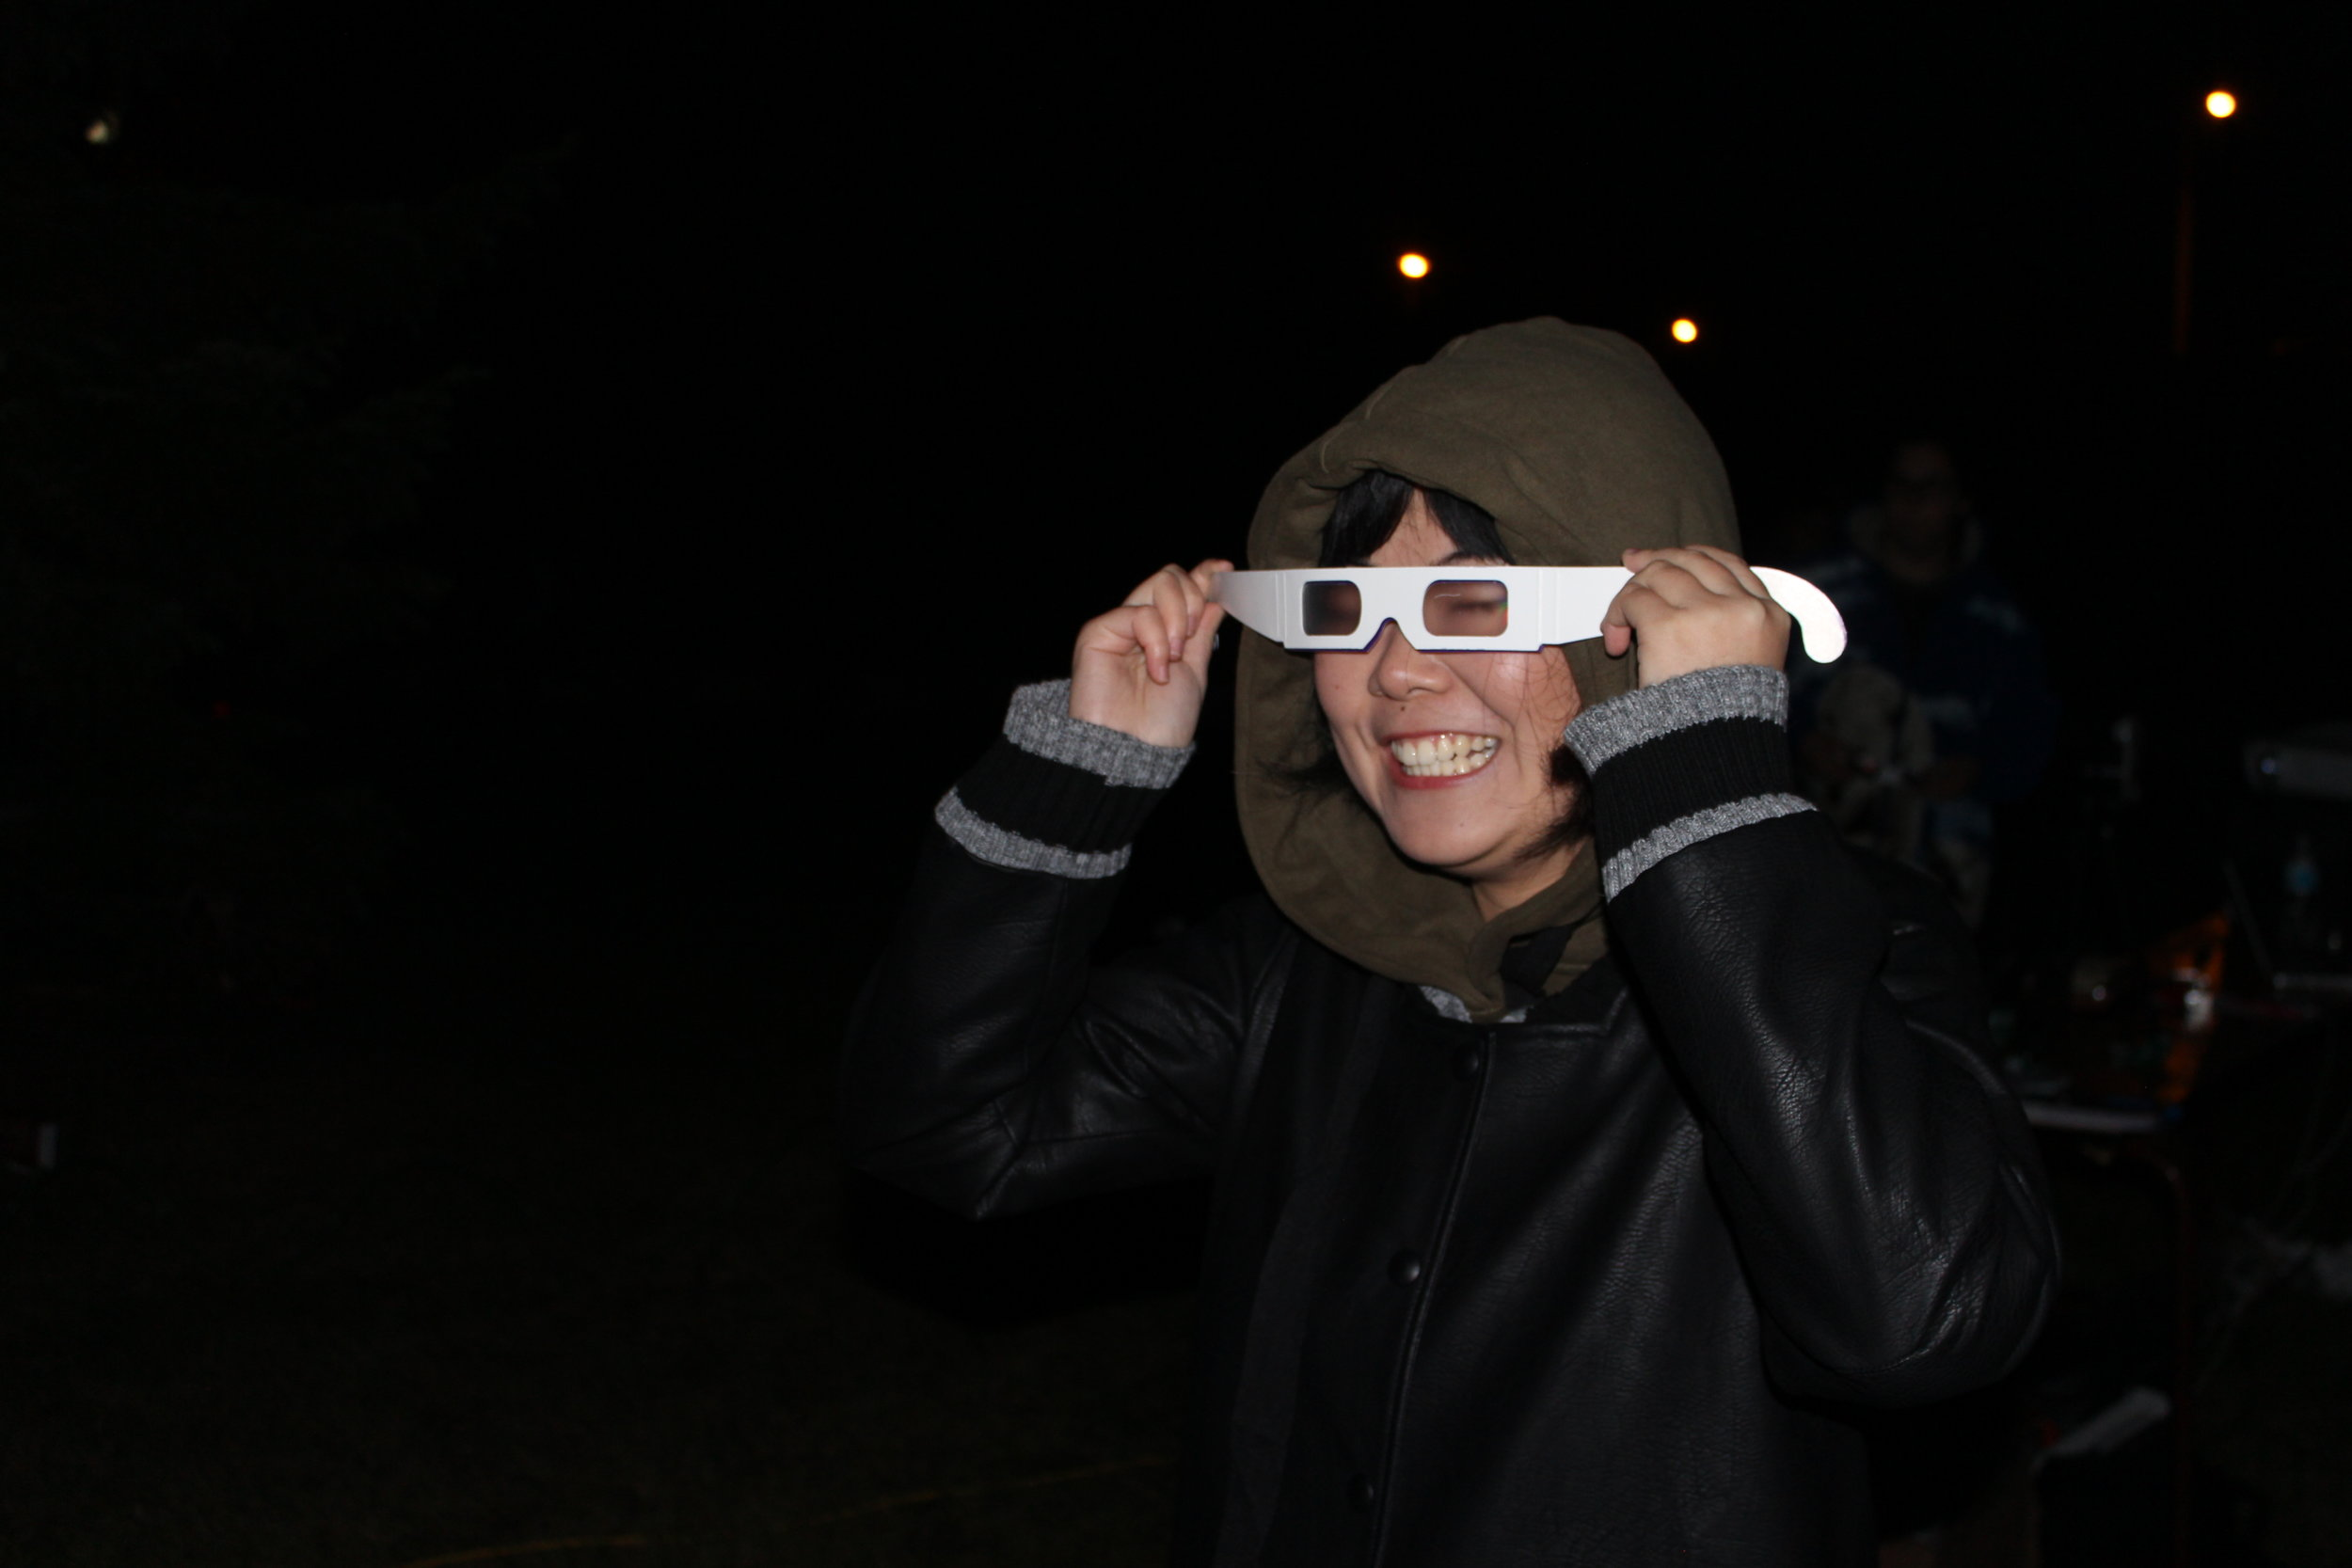 One of our students, Gen, having fun with the diffraction grating glasses.